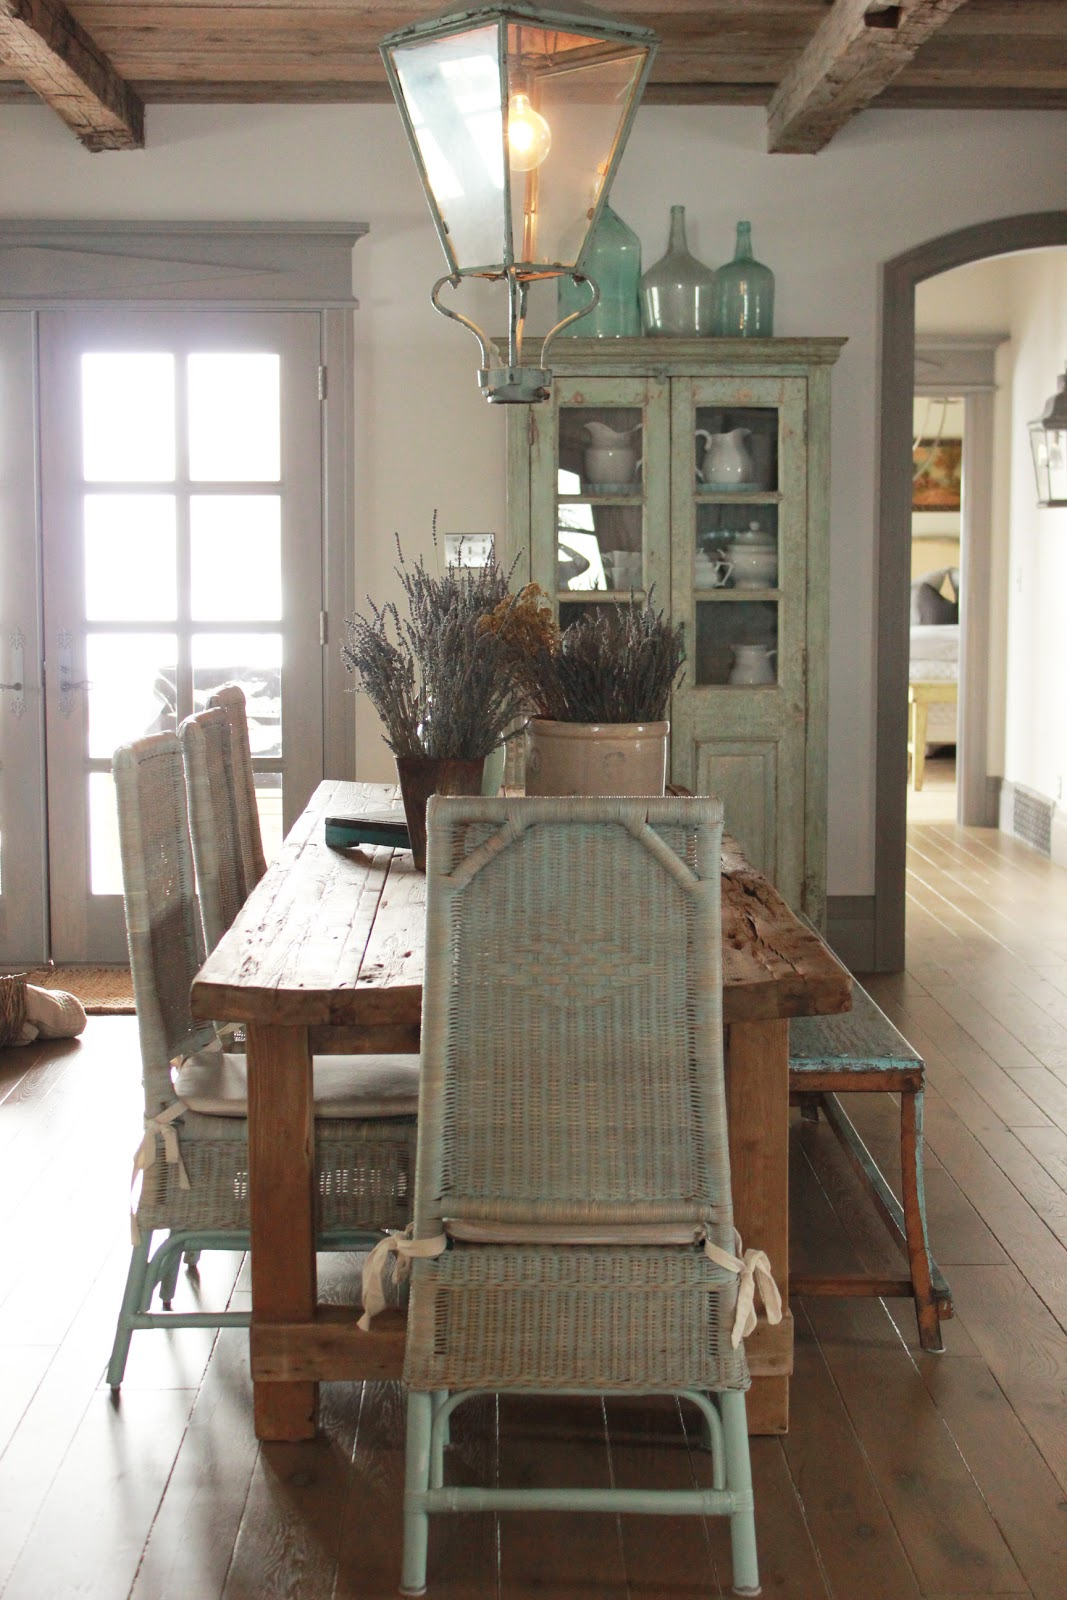 Chaises Nordic Chic 8 French Country Kitchen Decorating Ideas With Blues